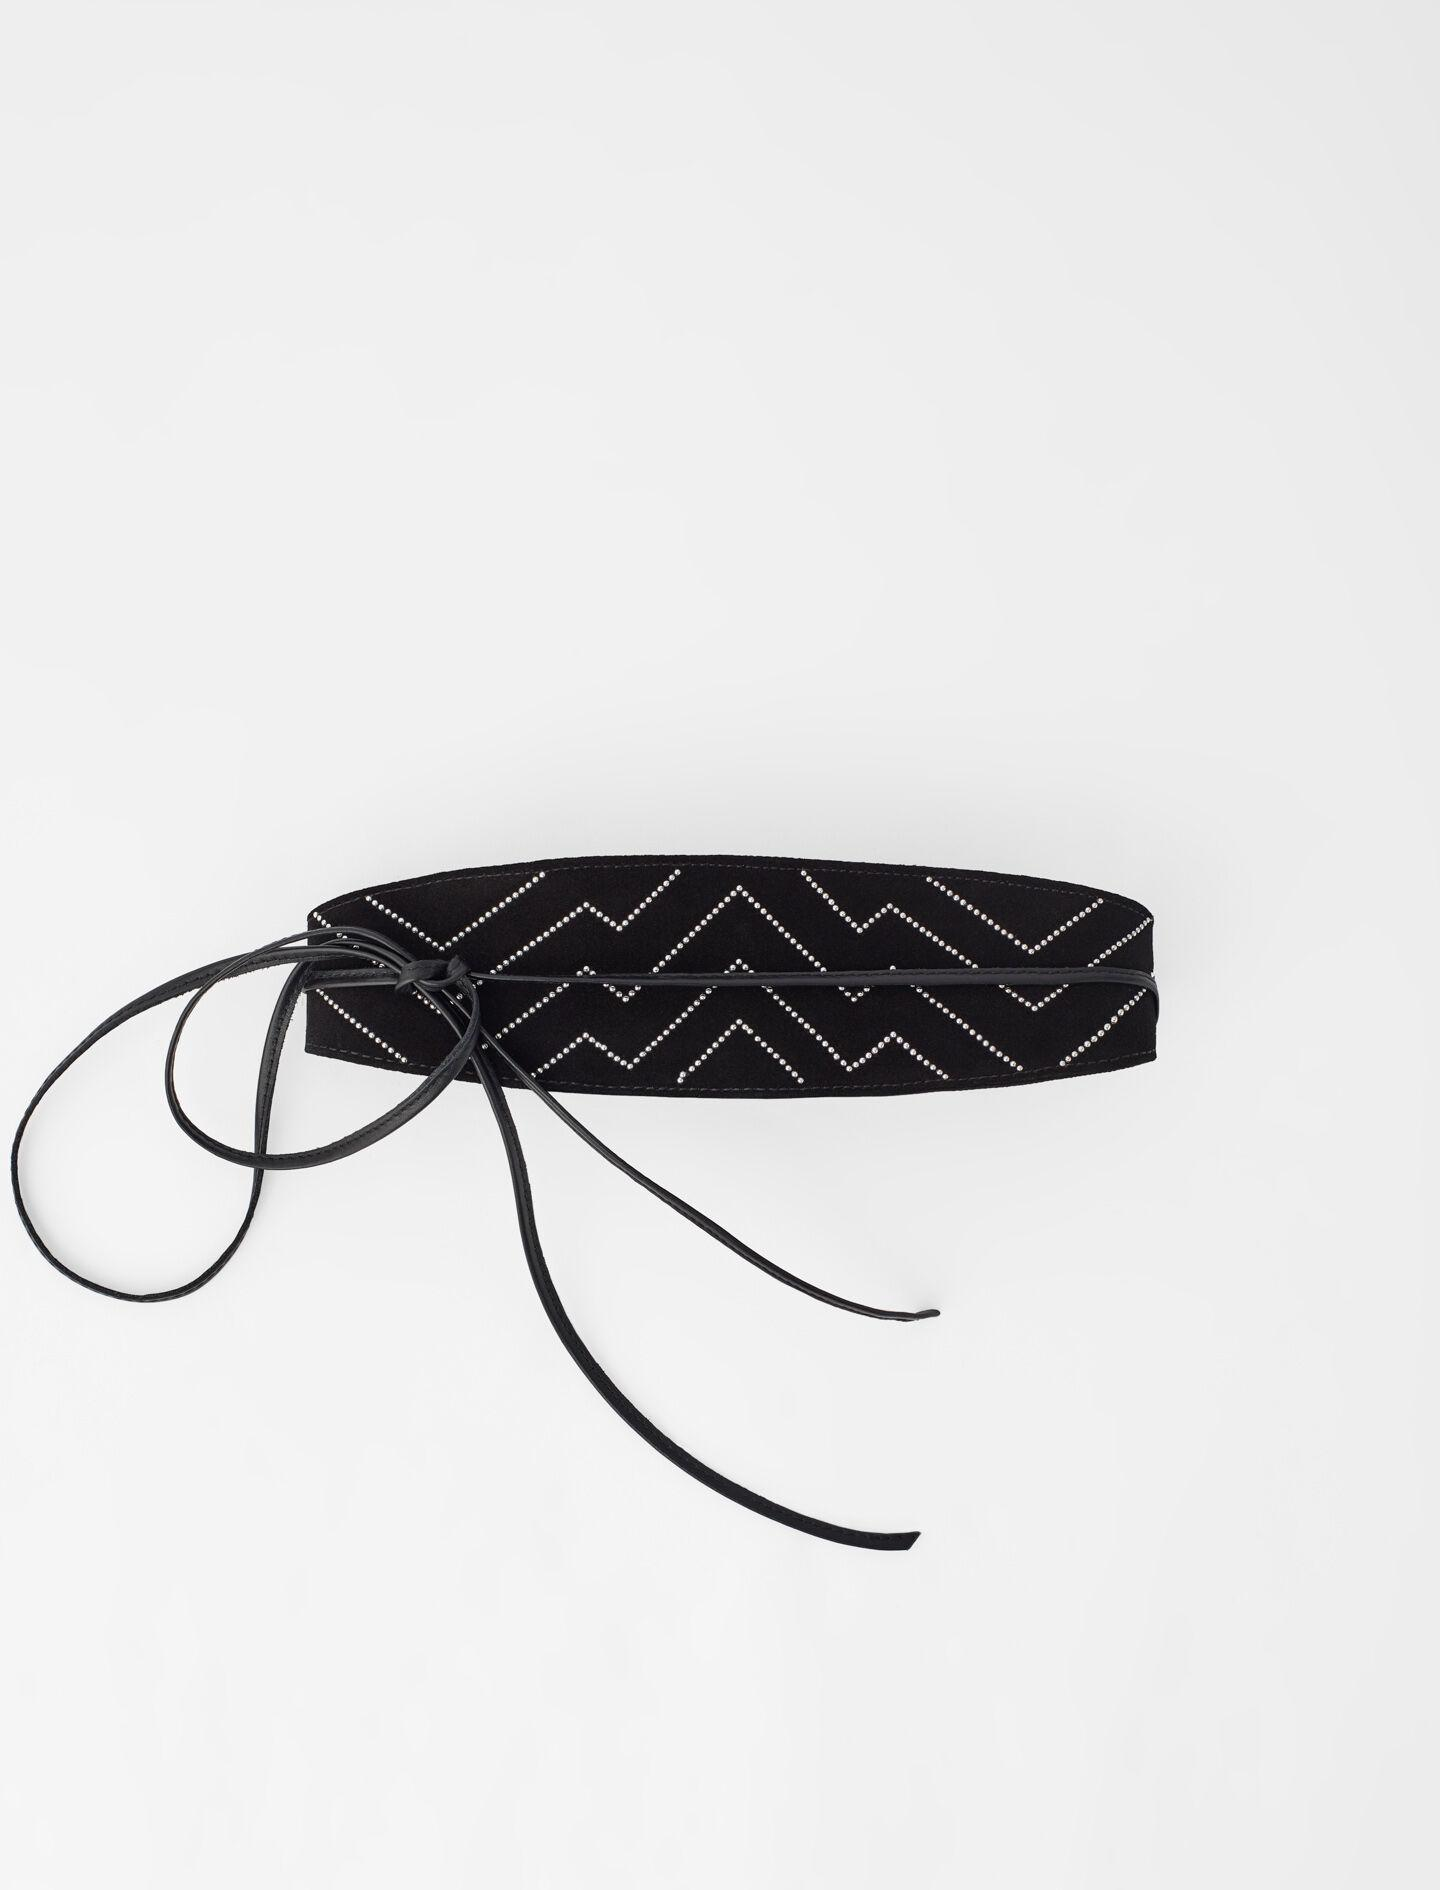 STUDDED SUEDE BELT WITH TIES